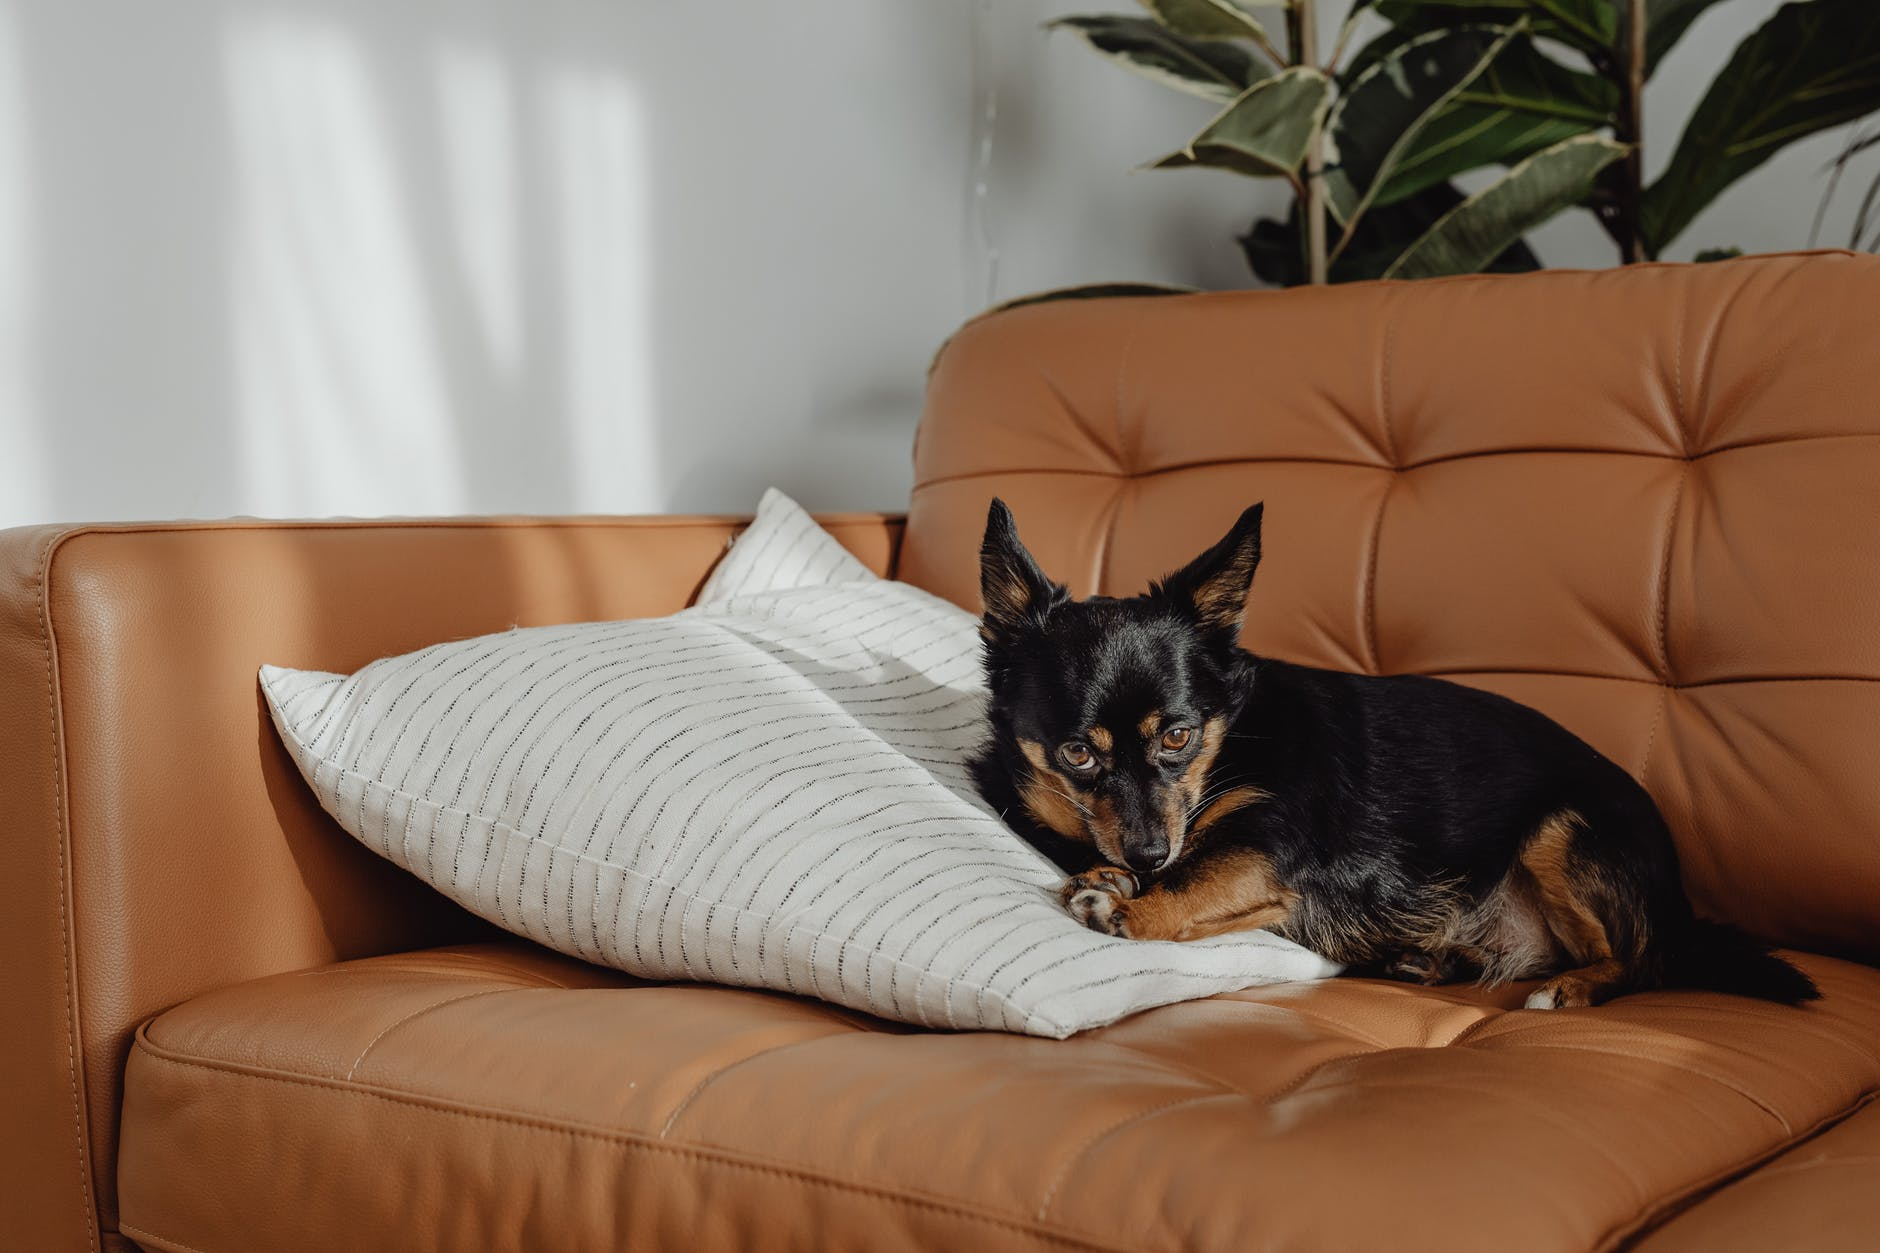 dog relaxation in hotel bed bedroom holiday